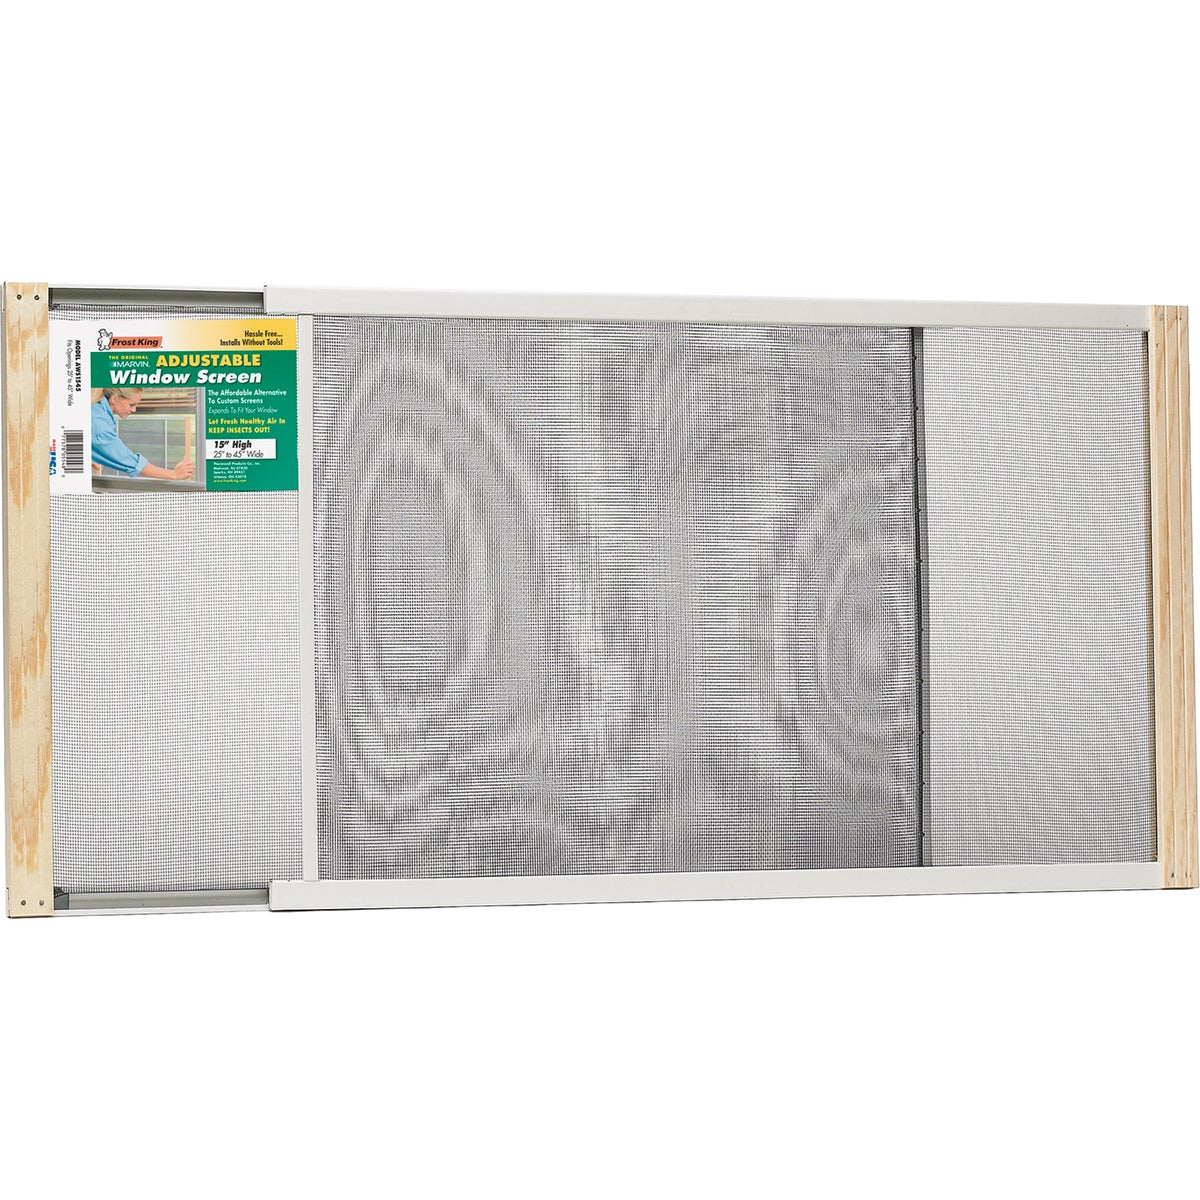 ADJUSTABLE WINDOW SCREEN - AWS1545 by Thermwell Prods Co